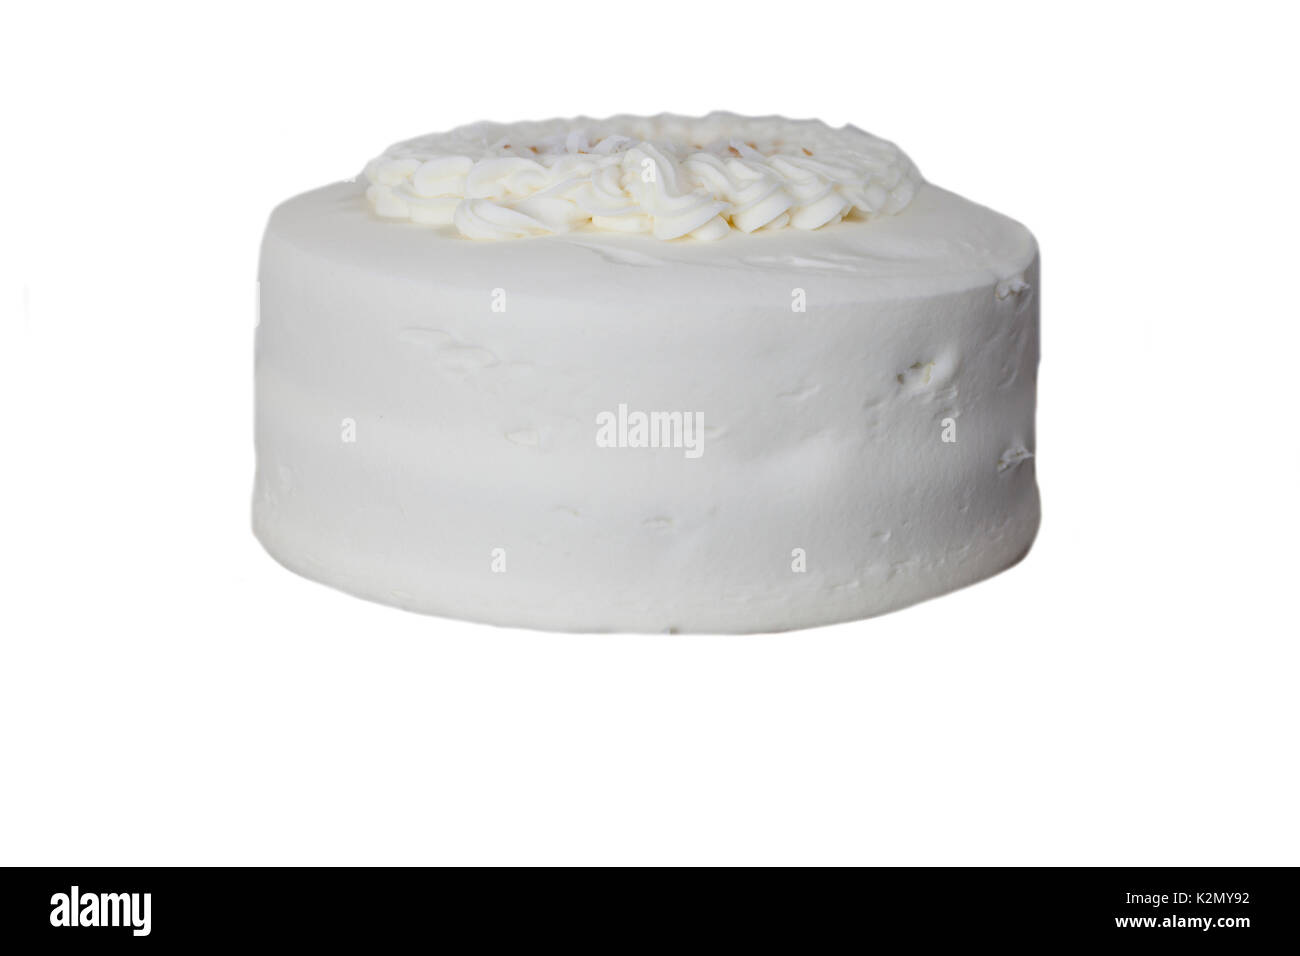 Isolated Uncut Italian Cream Cake With Delicious White Icing Stock